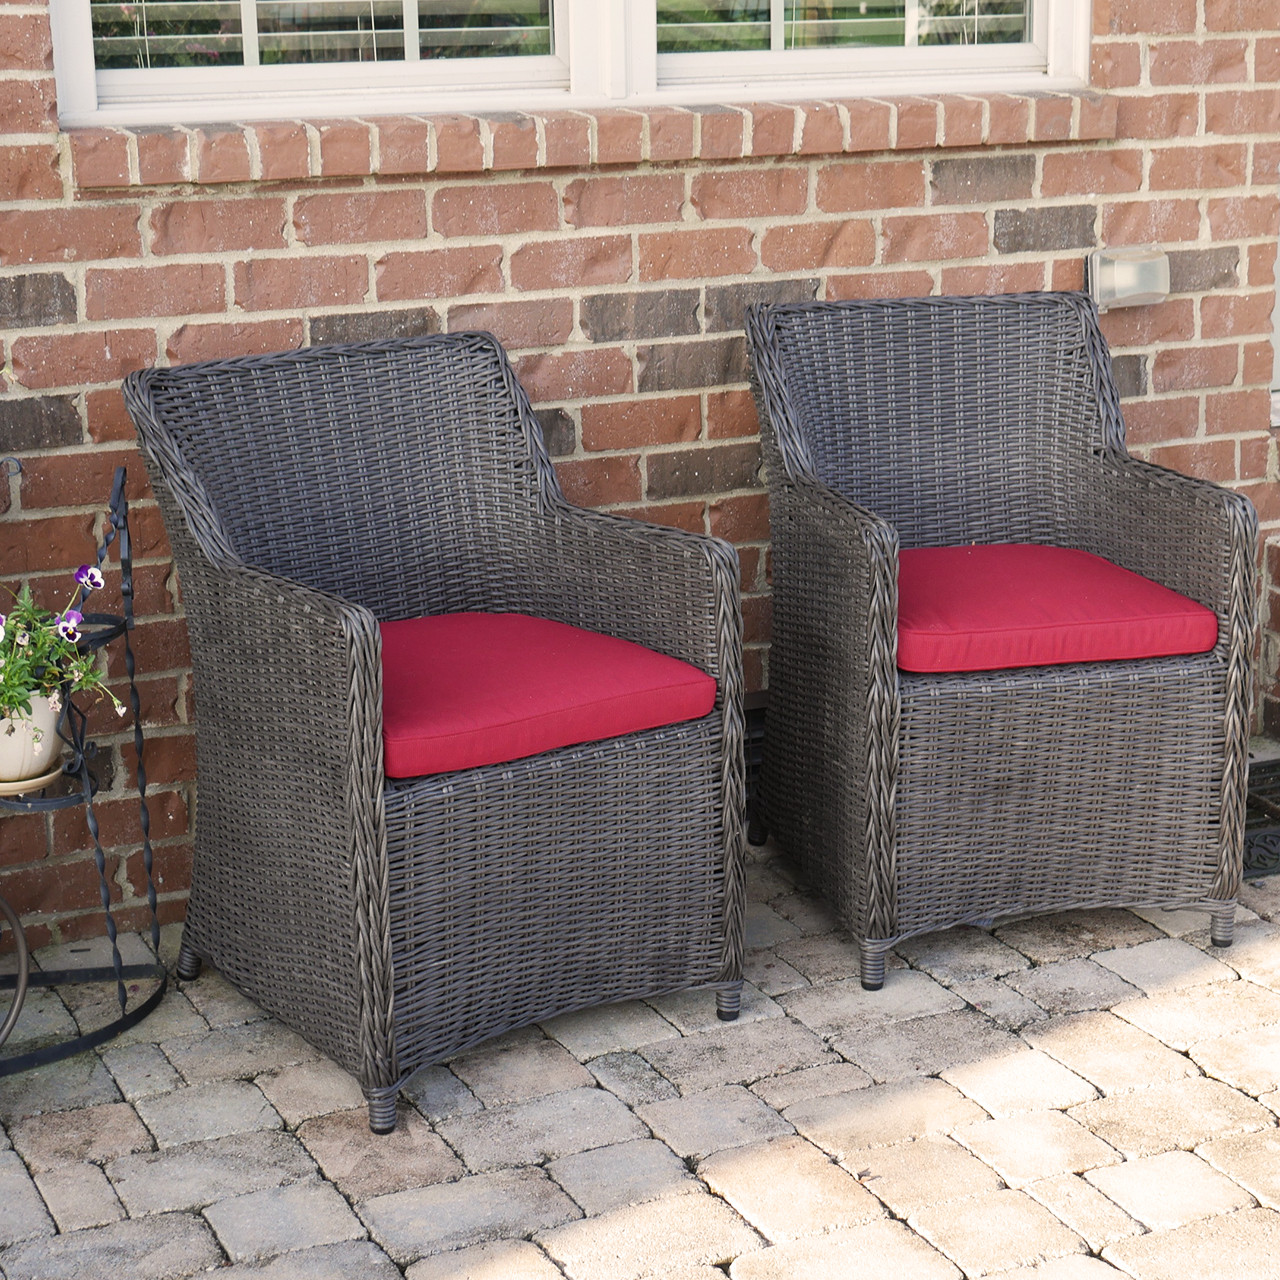 Wicker Patio Chair Set & Sea Island Wicker Patio Lounge Chair Set With Red Cushion - Set of 2 ...